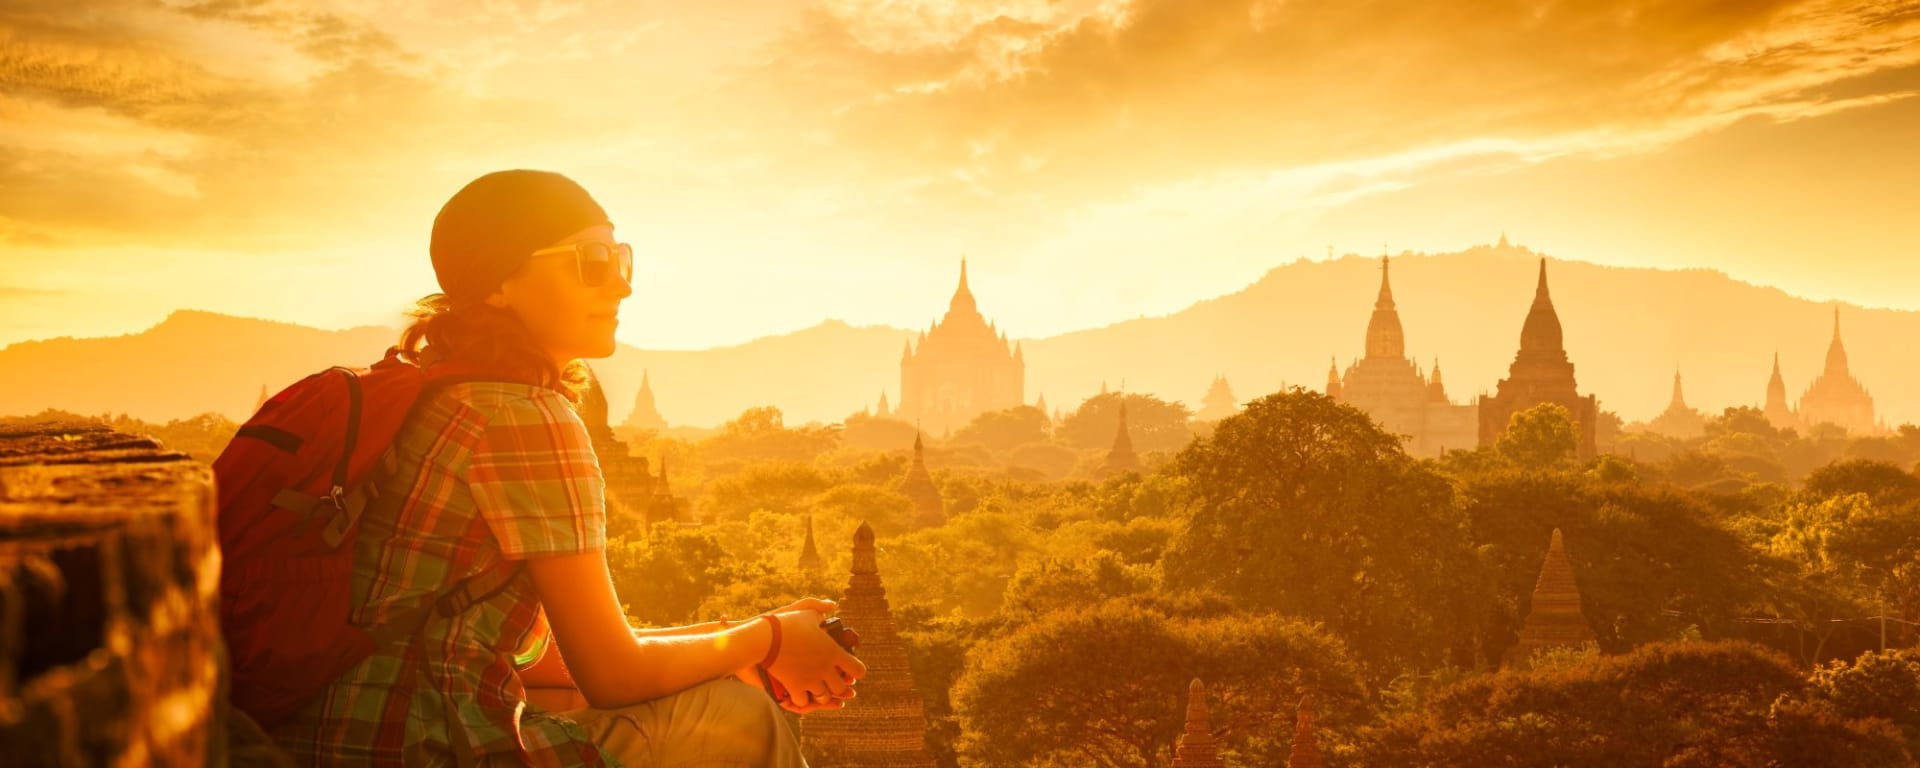 Découverte active du Myanmar de Yangon: Bagan Sunset with Traveller